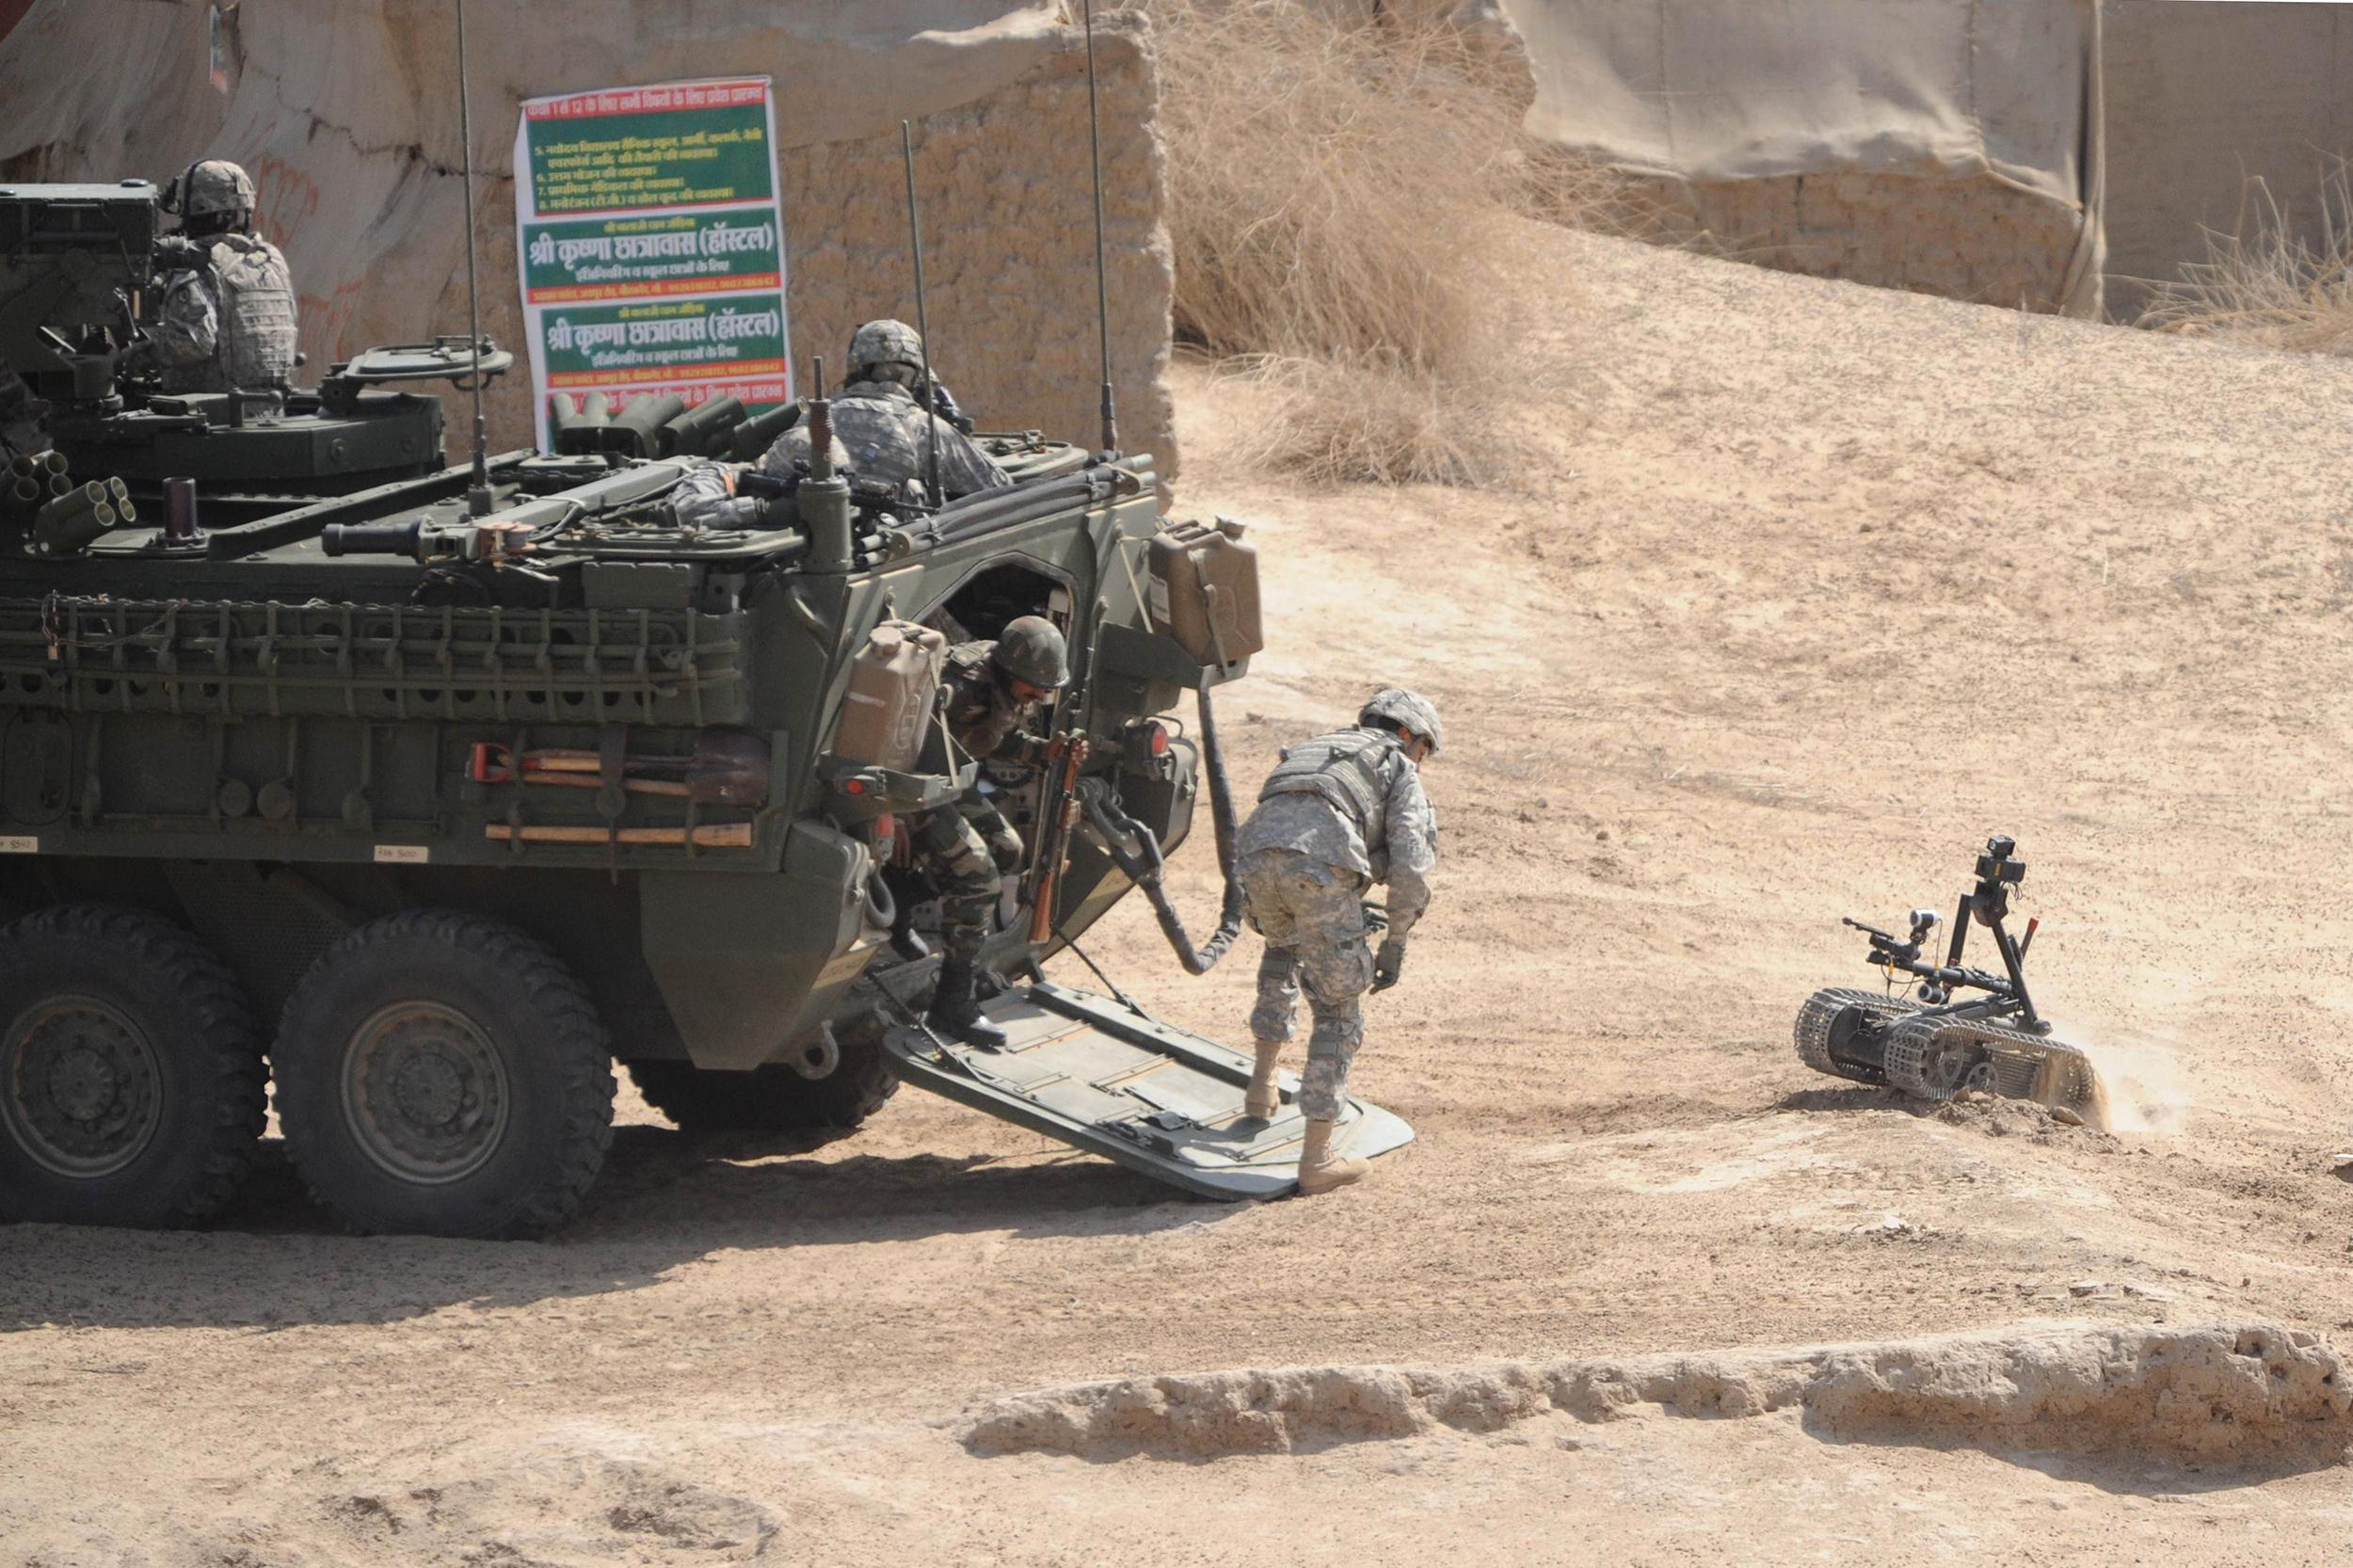 Us soldiers deploy an explosives ordinan